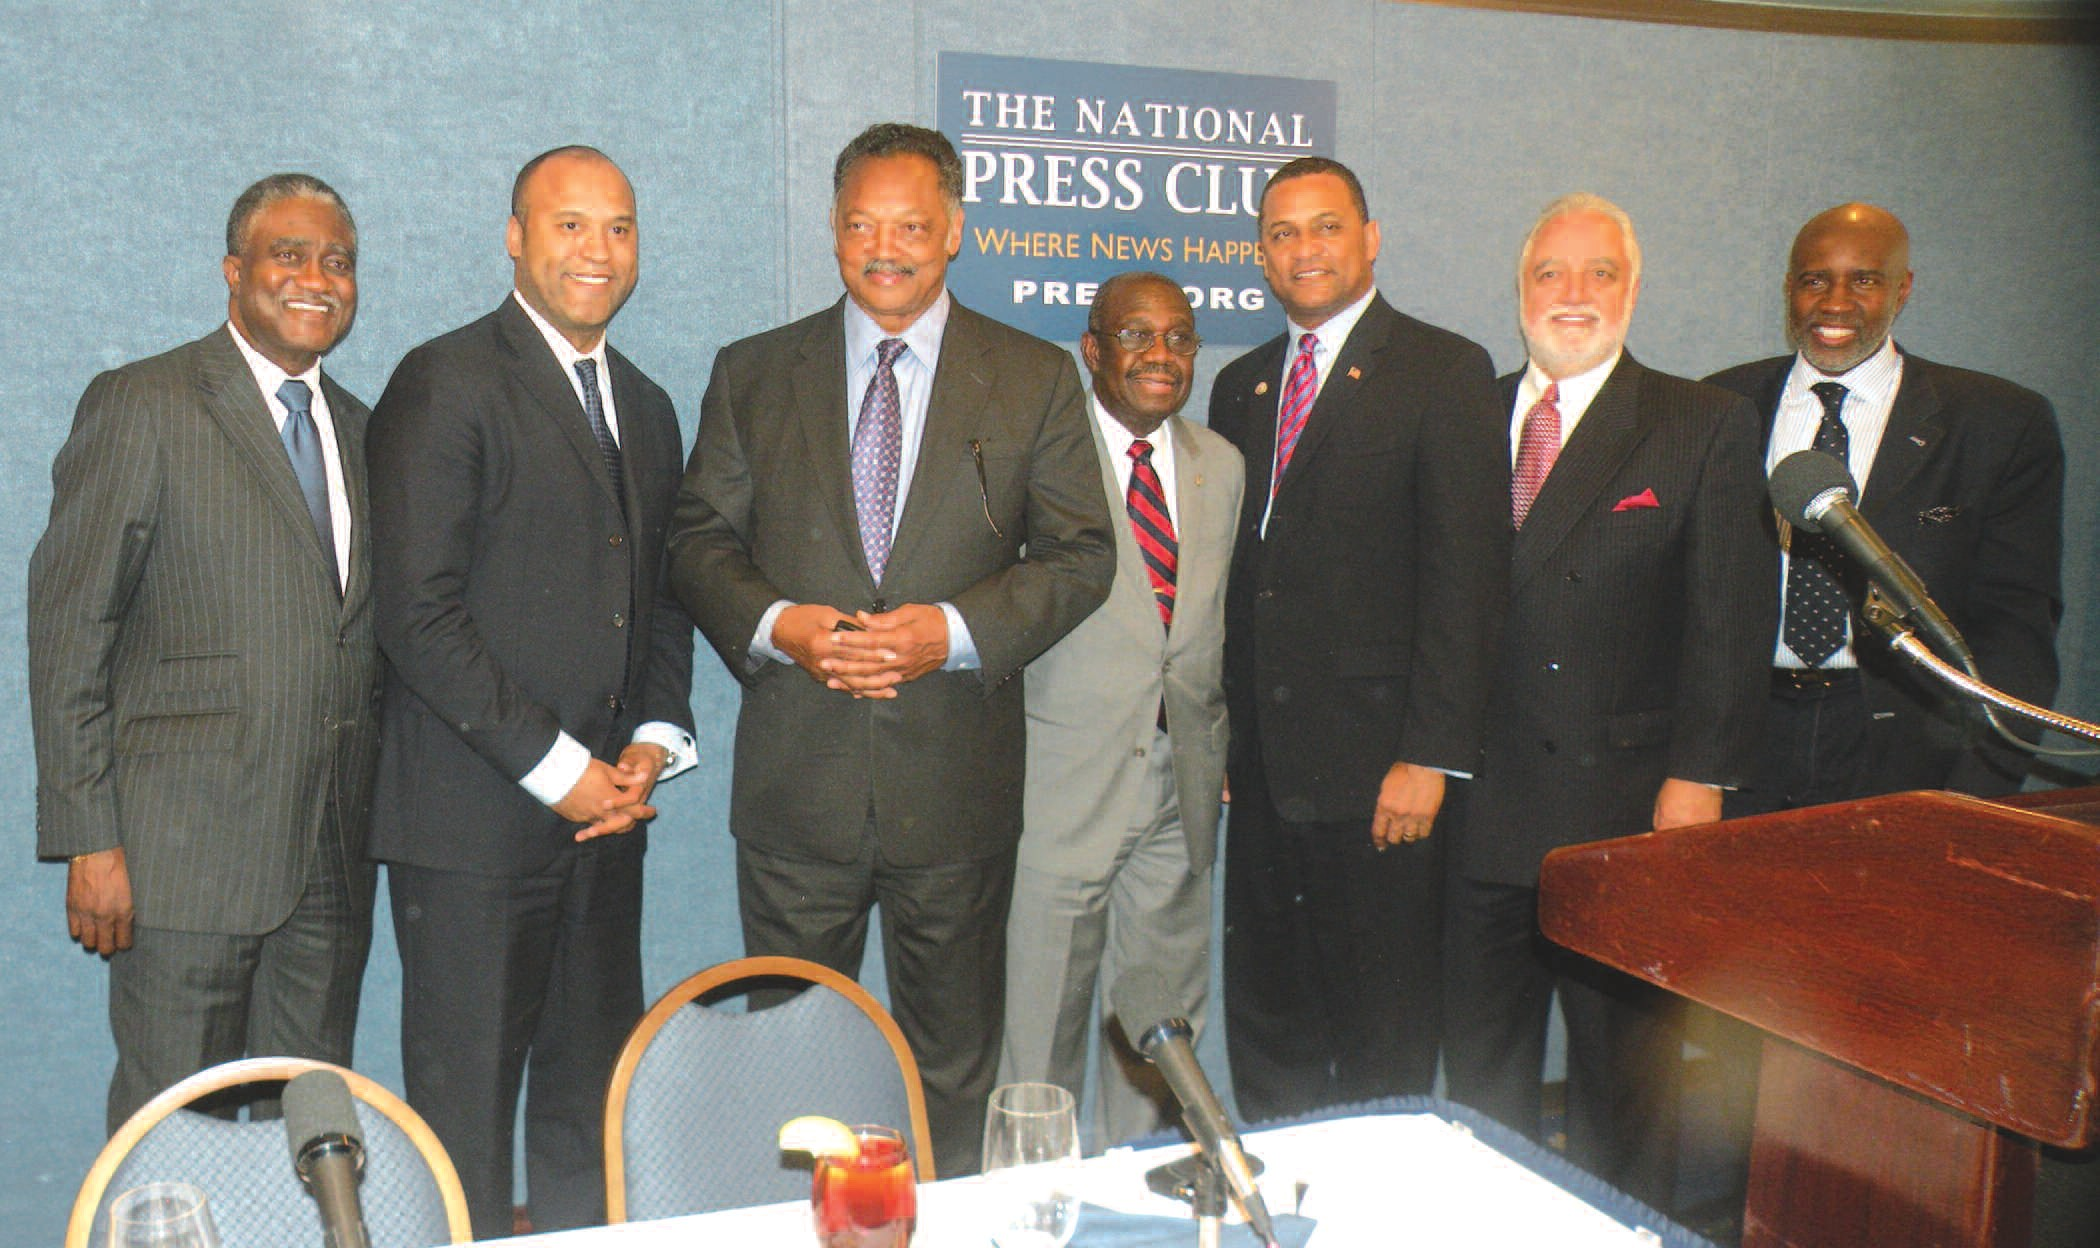 L-R: George Curry, Londell McMillan, Rev. Jesse Jackson, Karl Rodney, Cloves Campbell, Danny Bakewell and Len Burnette